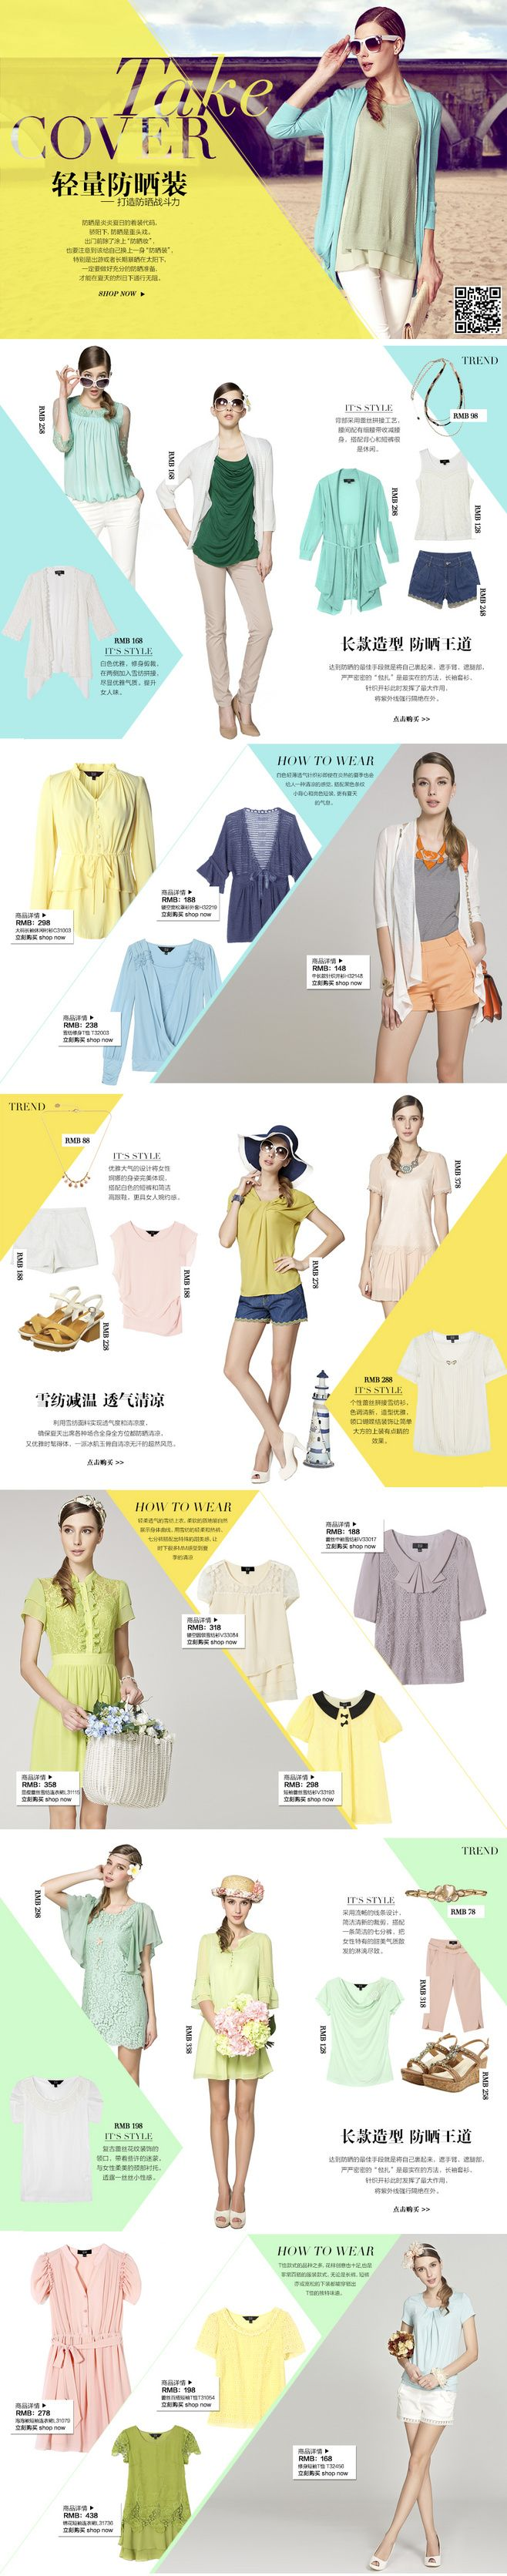 Fashion webshop - cut diagonally #webdesign